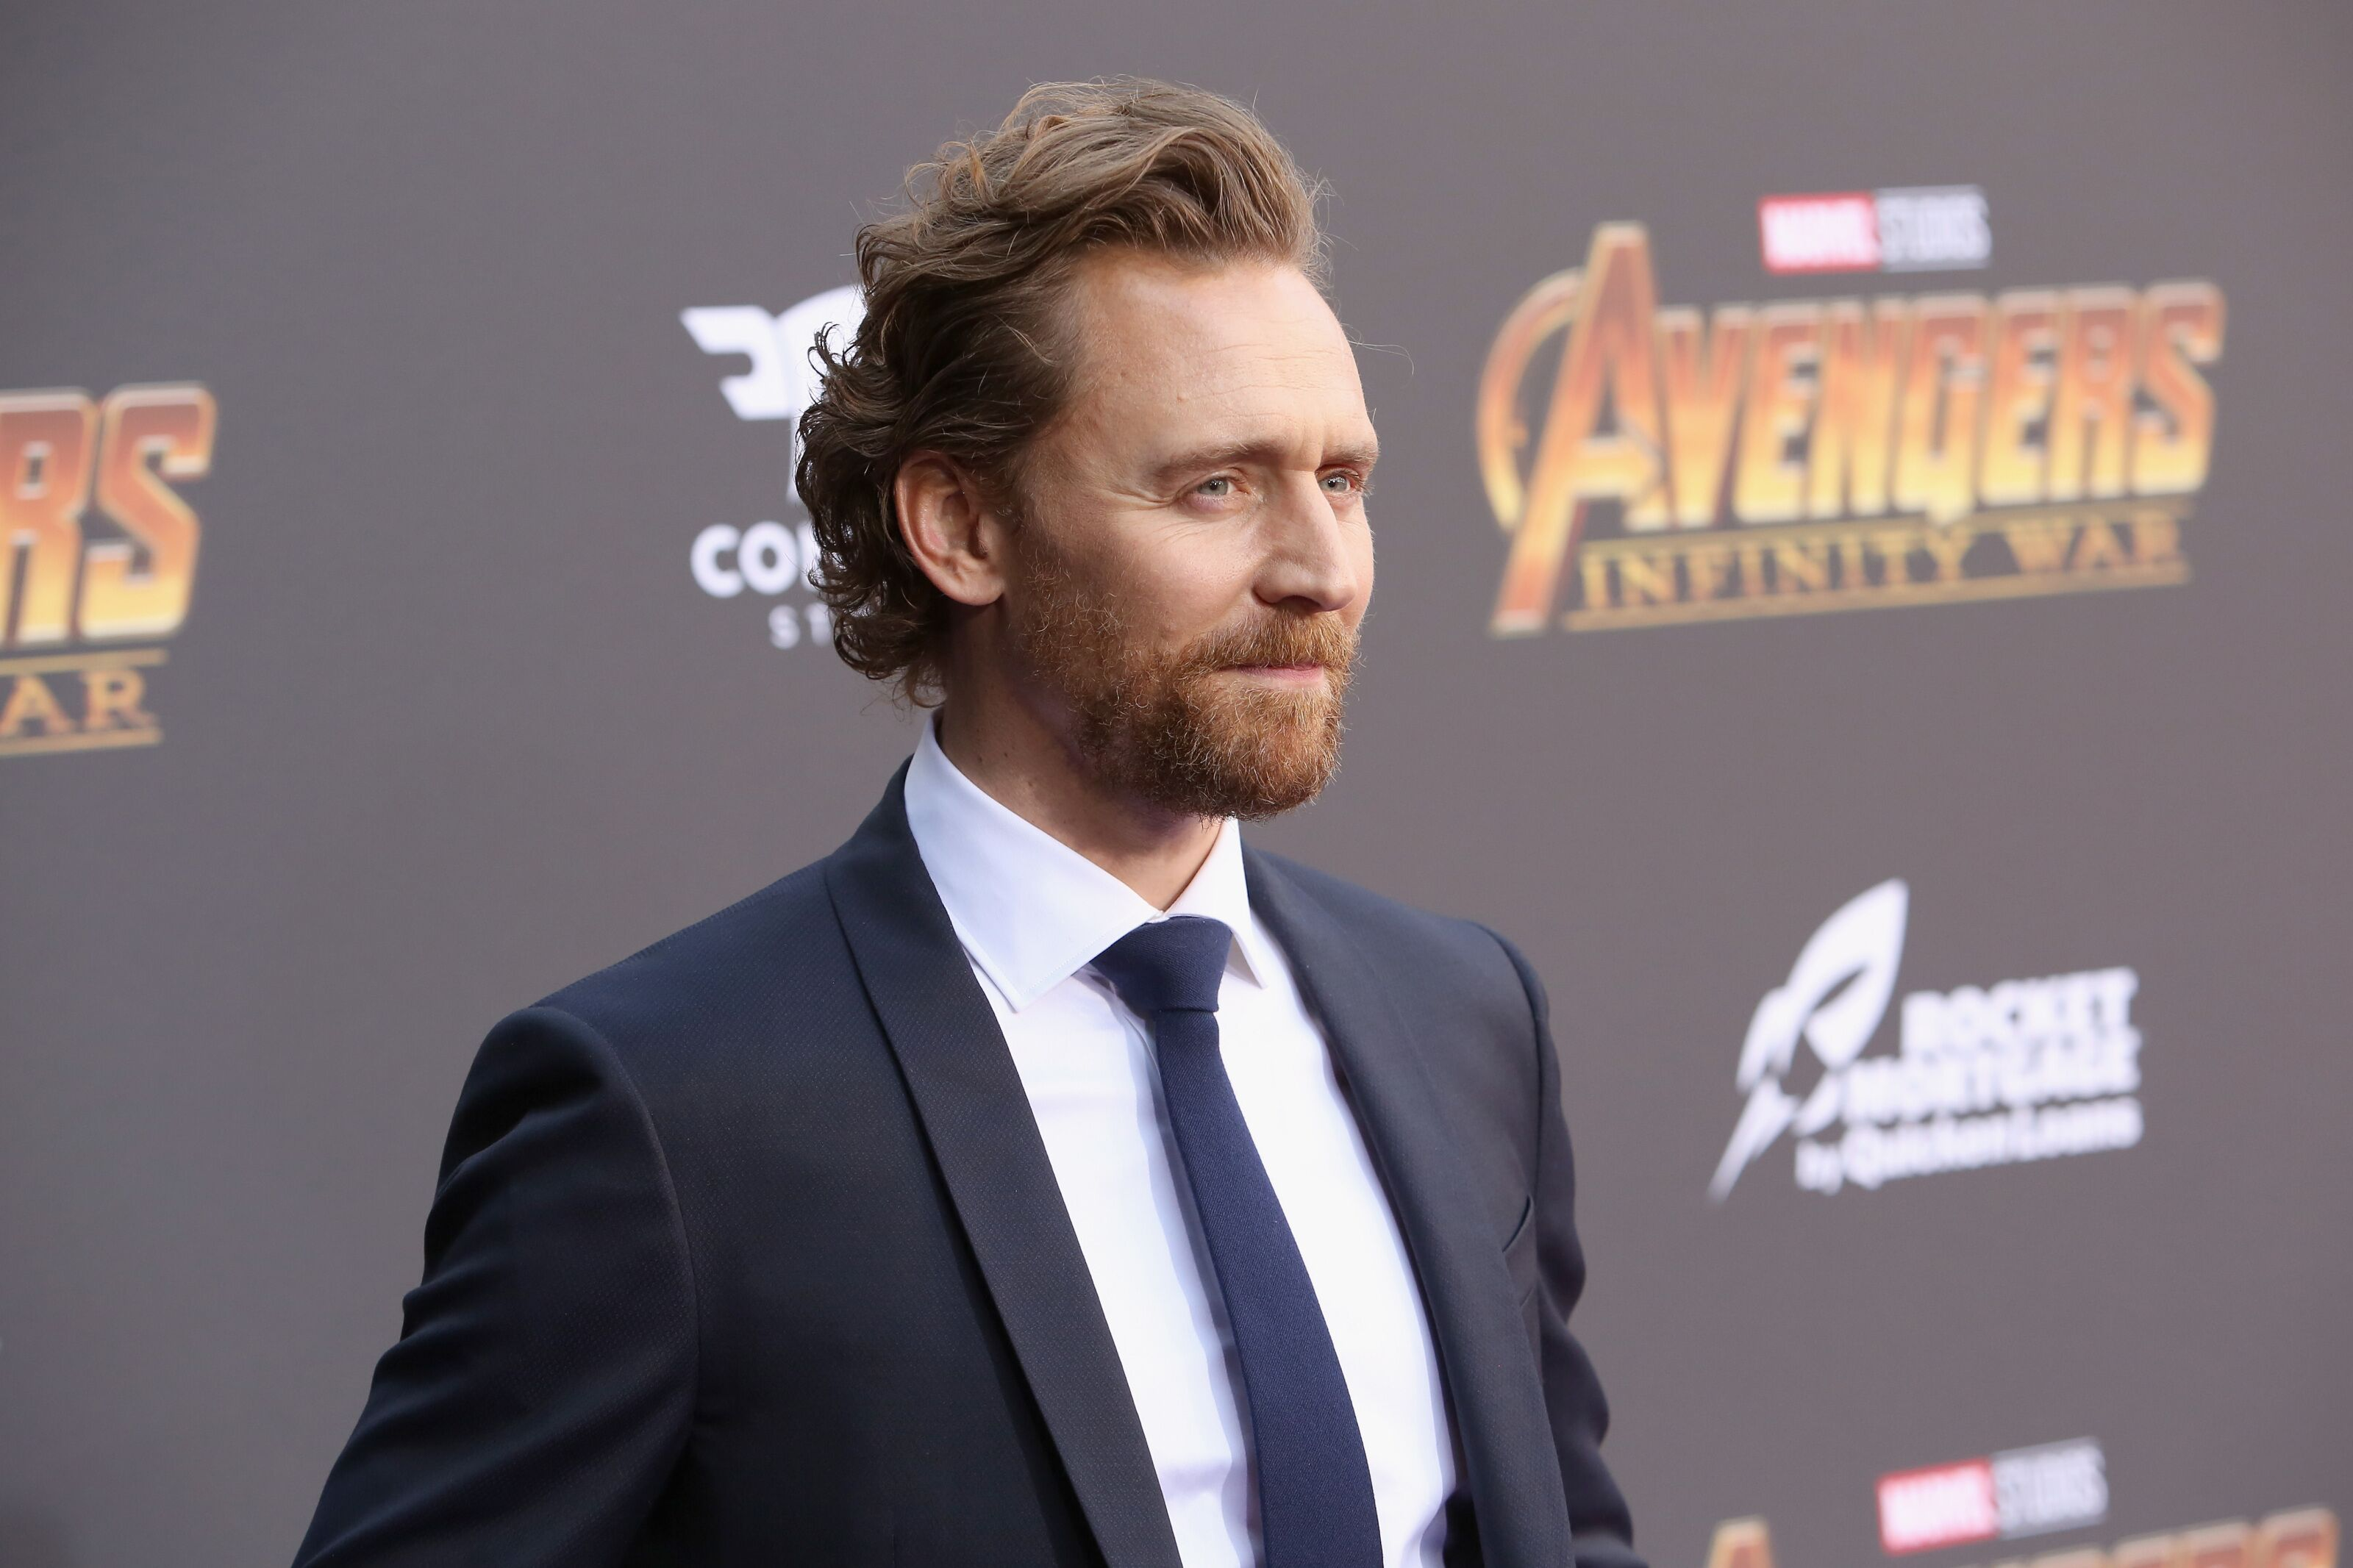 Tom Hiddleston explains why people love Loki, and it's heartbreaking